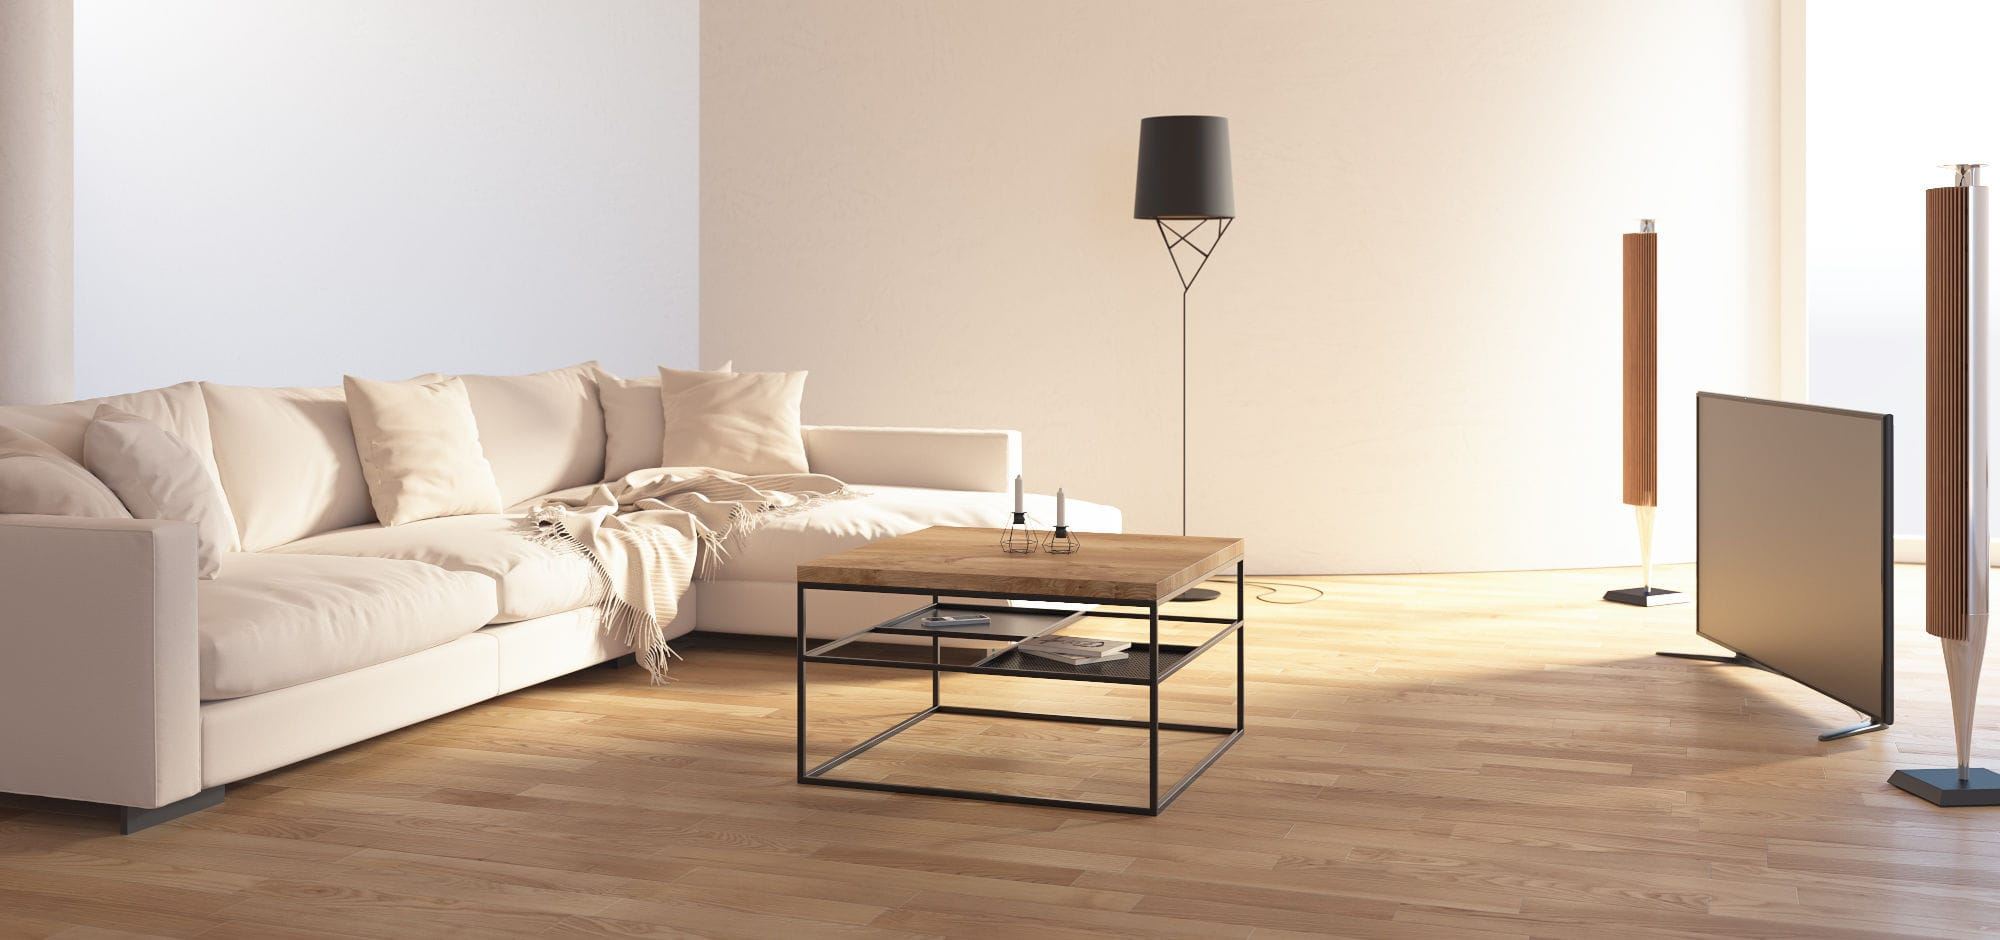 Couchtisch Metallbeine Contemporary Coffee Table Oak Lacquered Wood Mdf